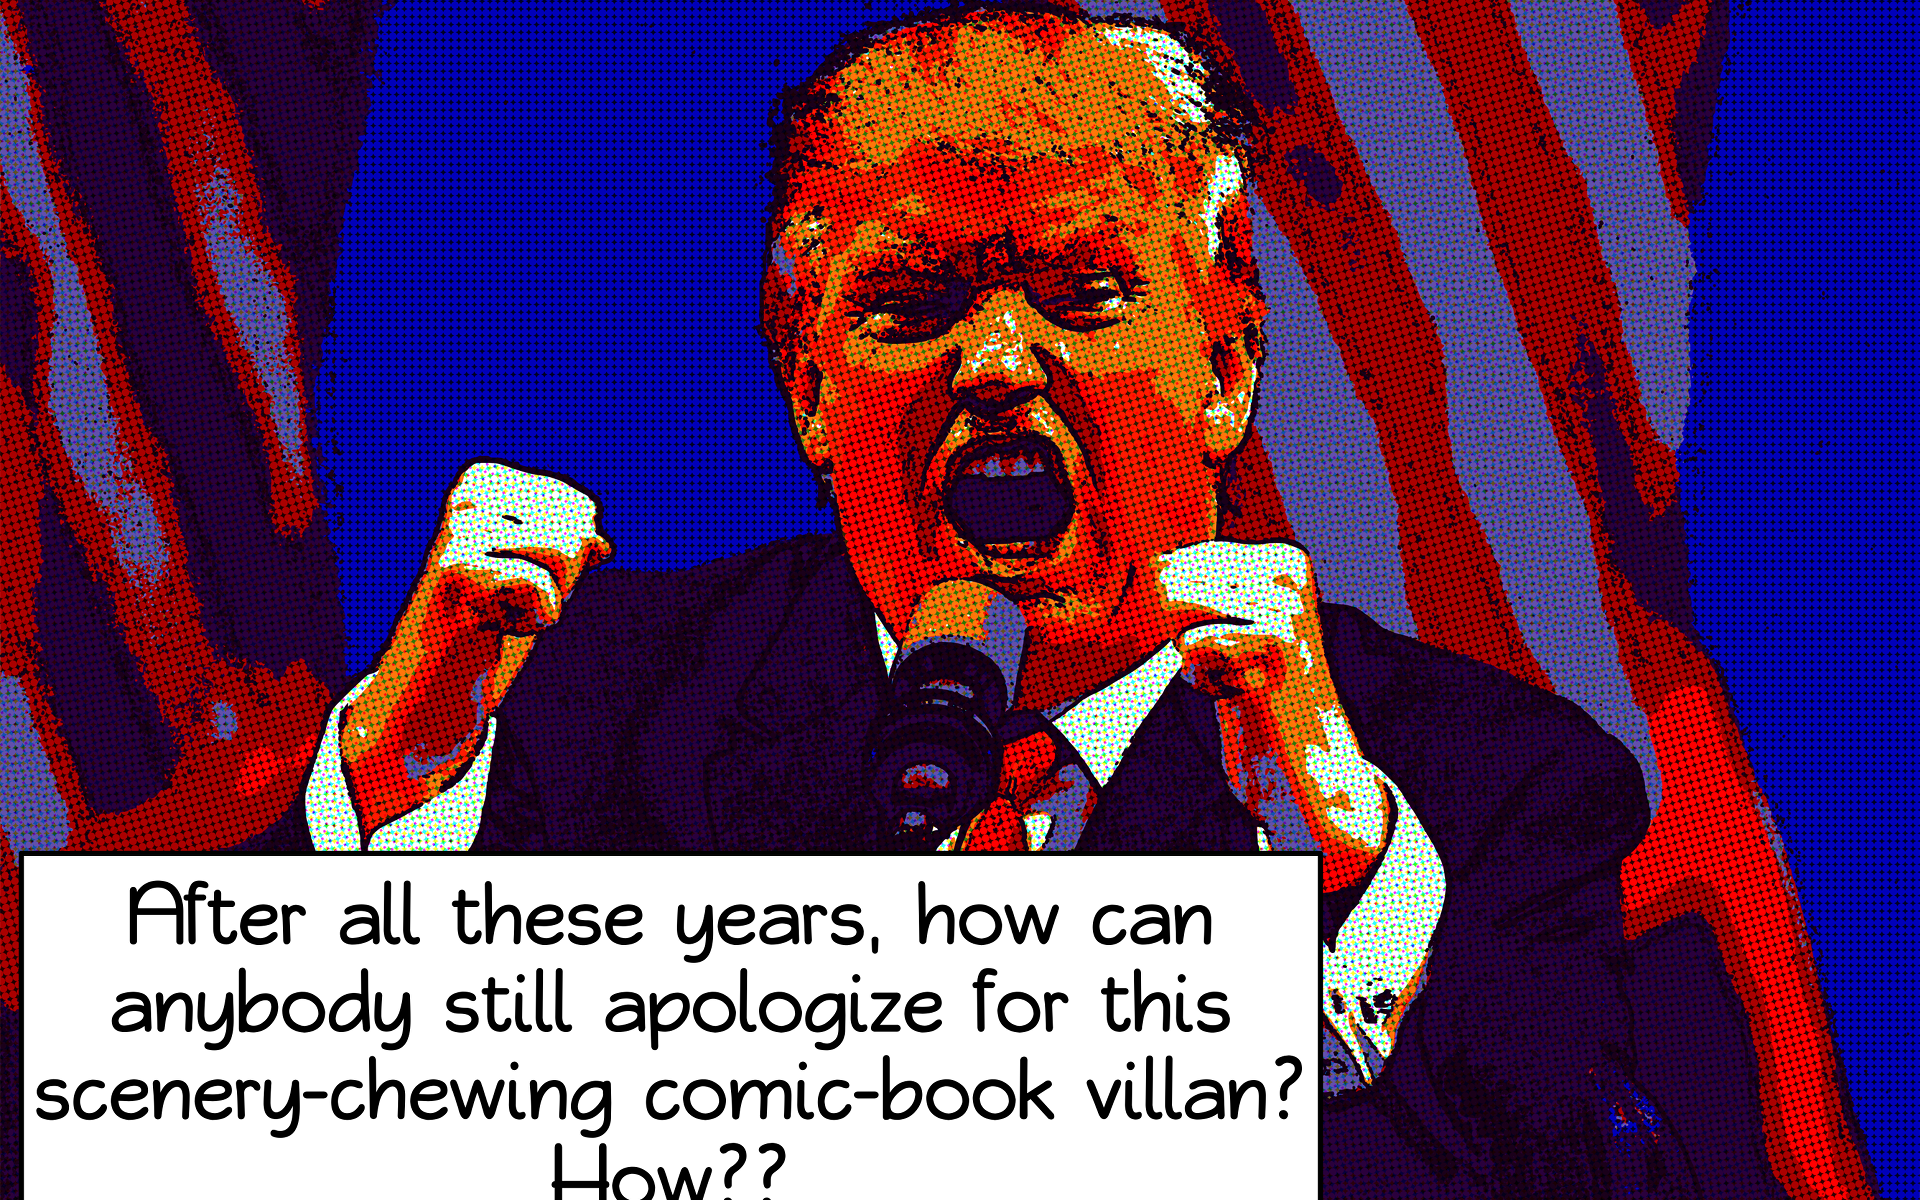 After all these years, how can anybody still apologize for this scenery-chewing comic-book villan? How??